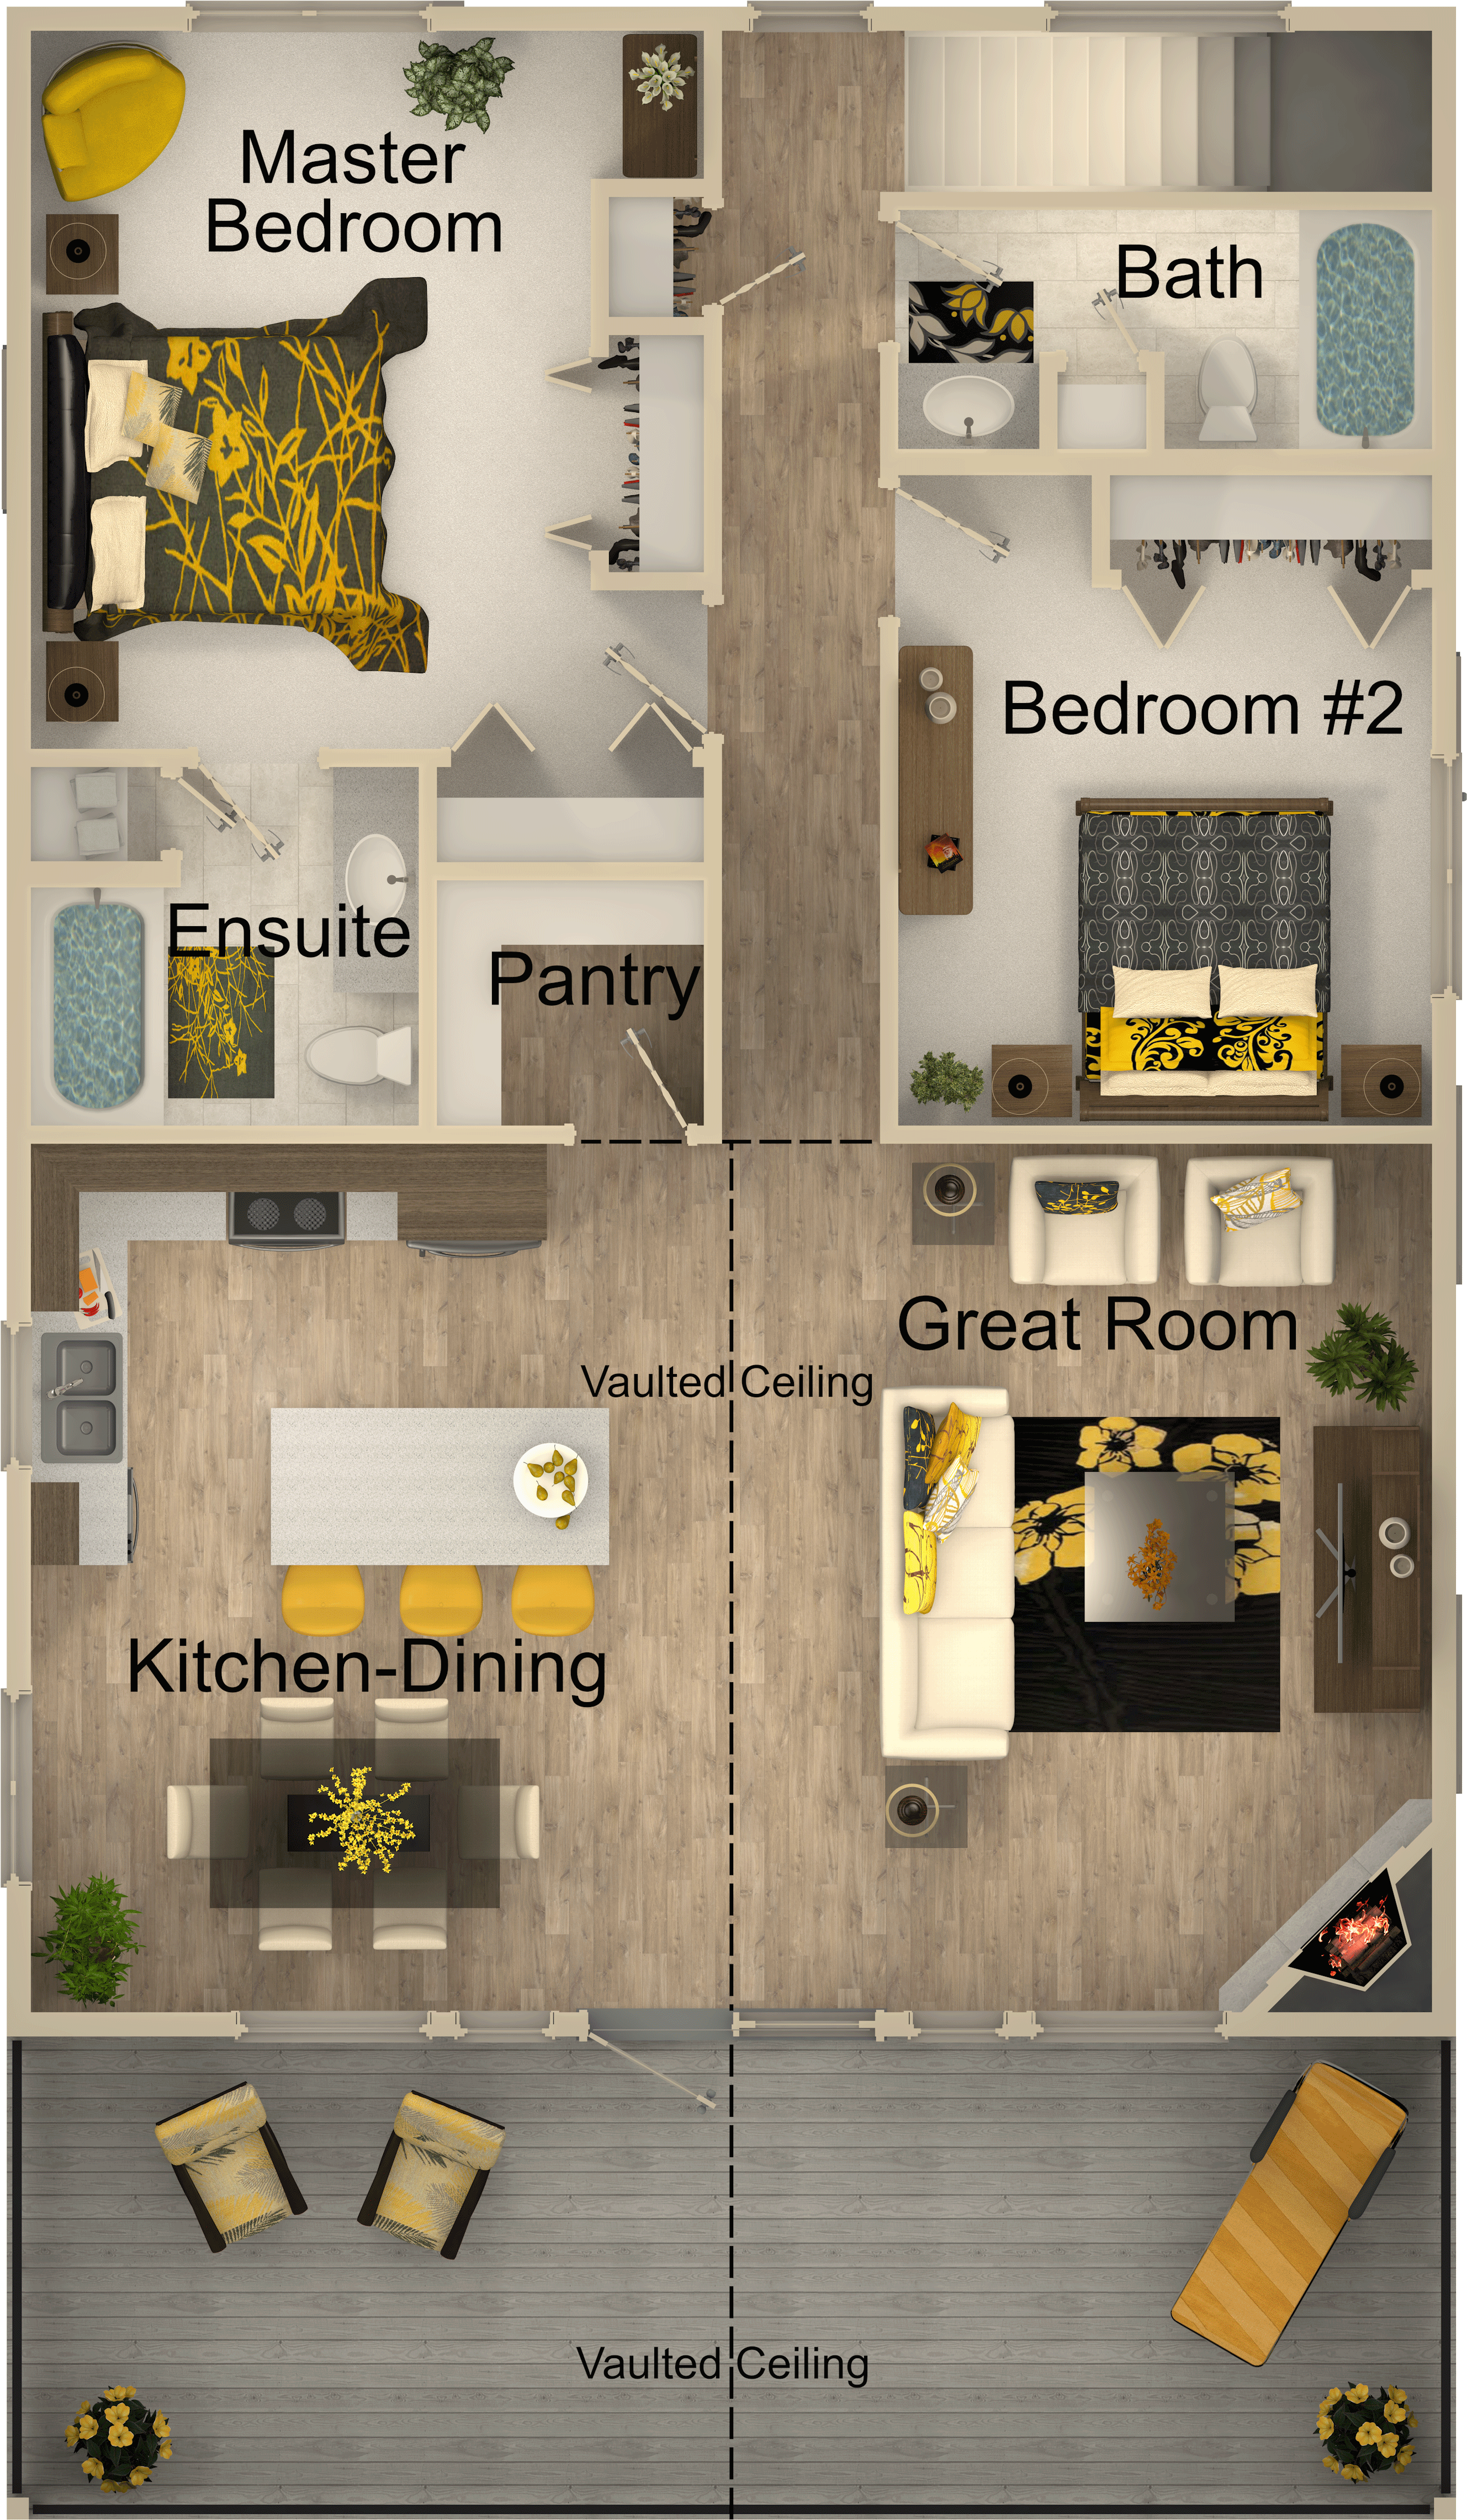 Southport---Plan-(Second-Floor).png